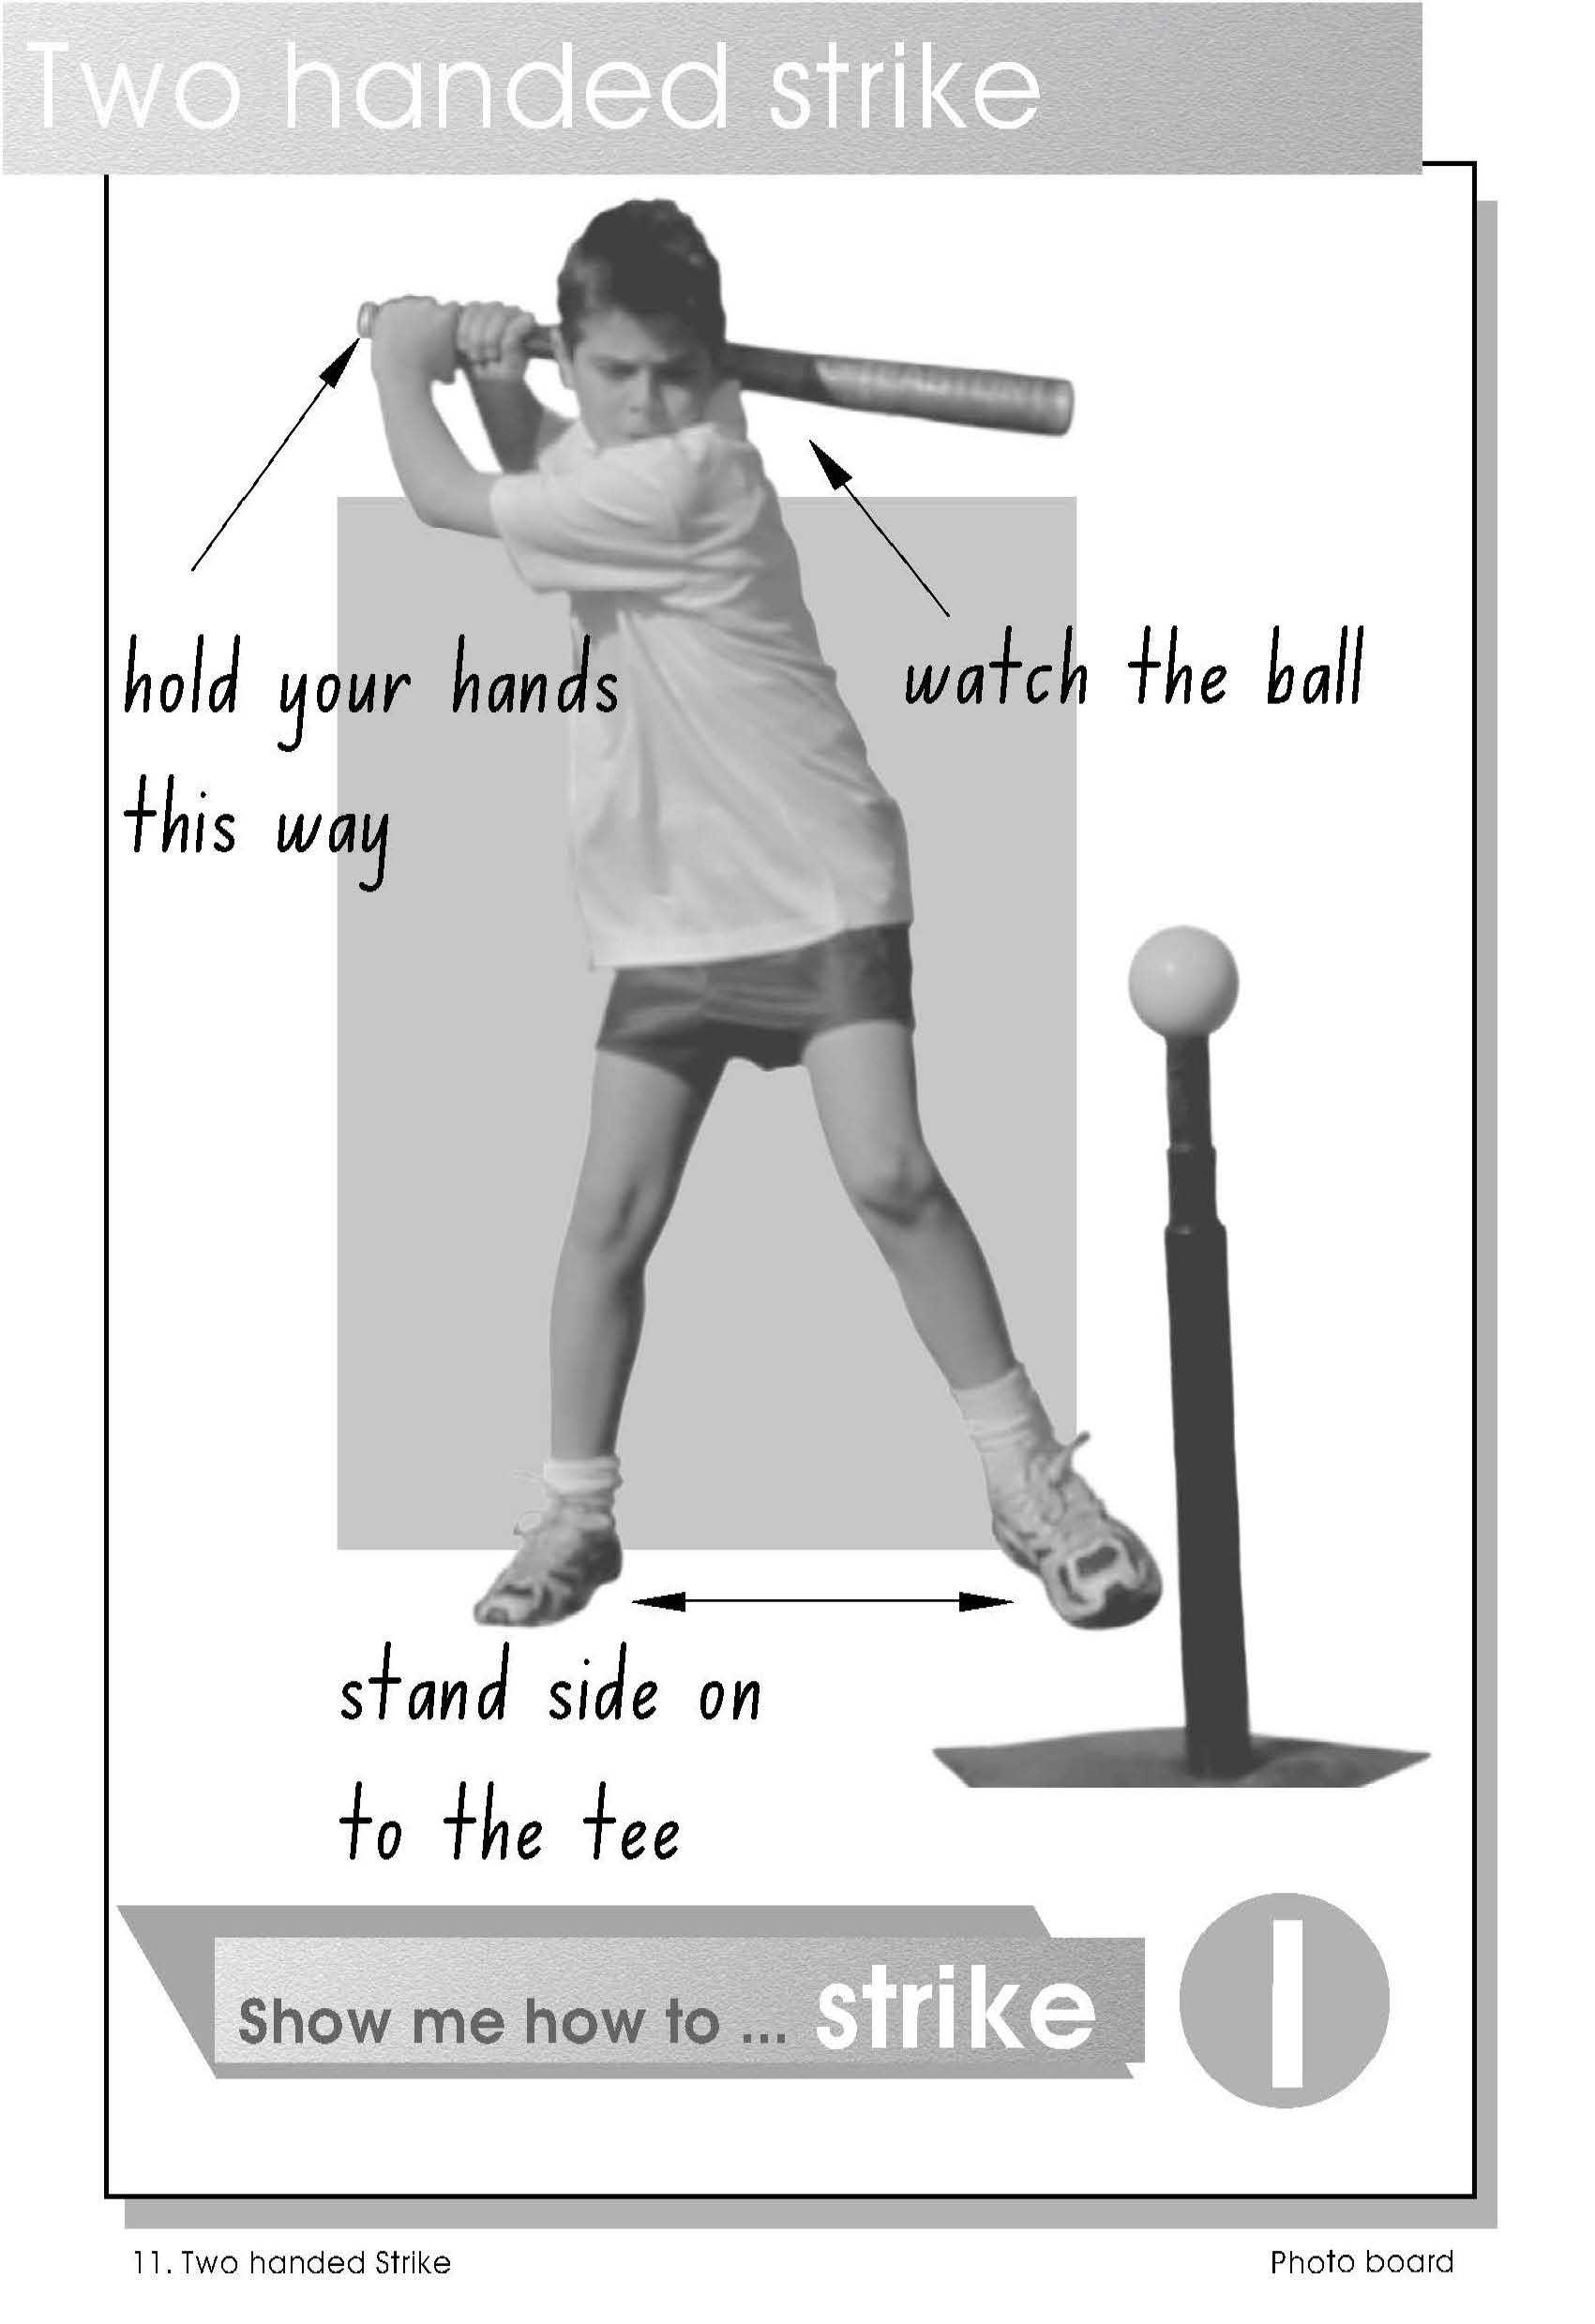 Observational poster - how to do a two-handed strike